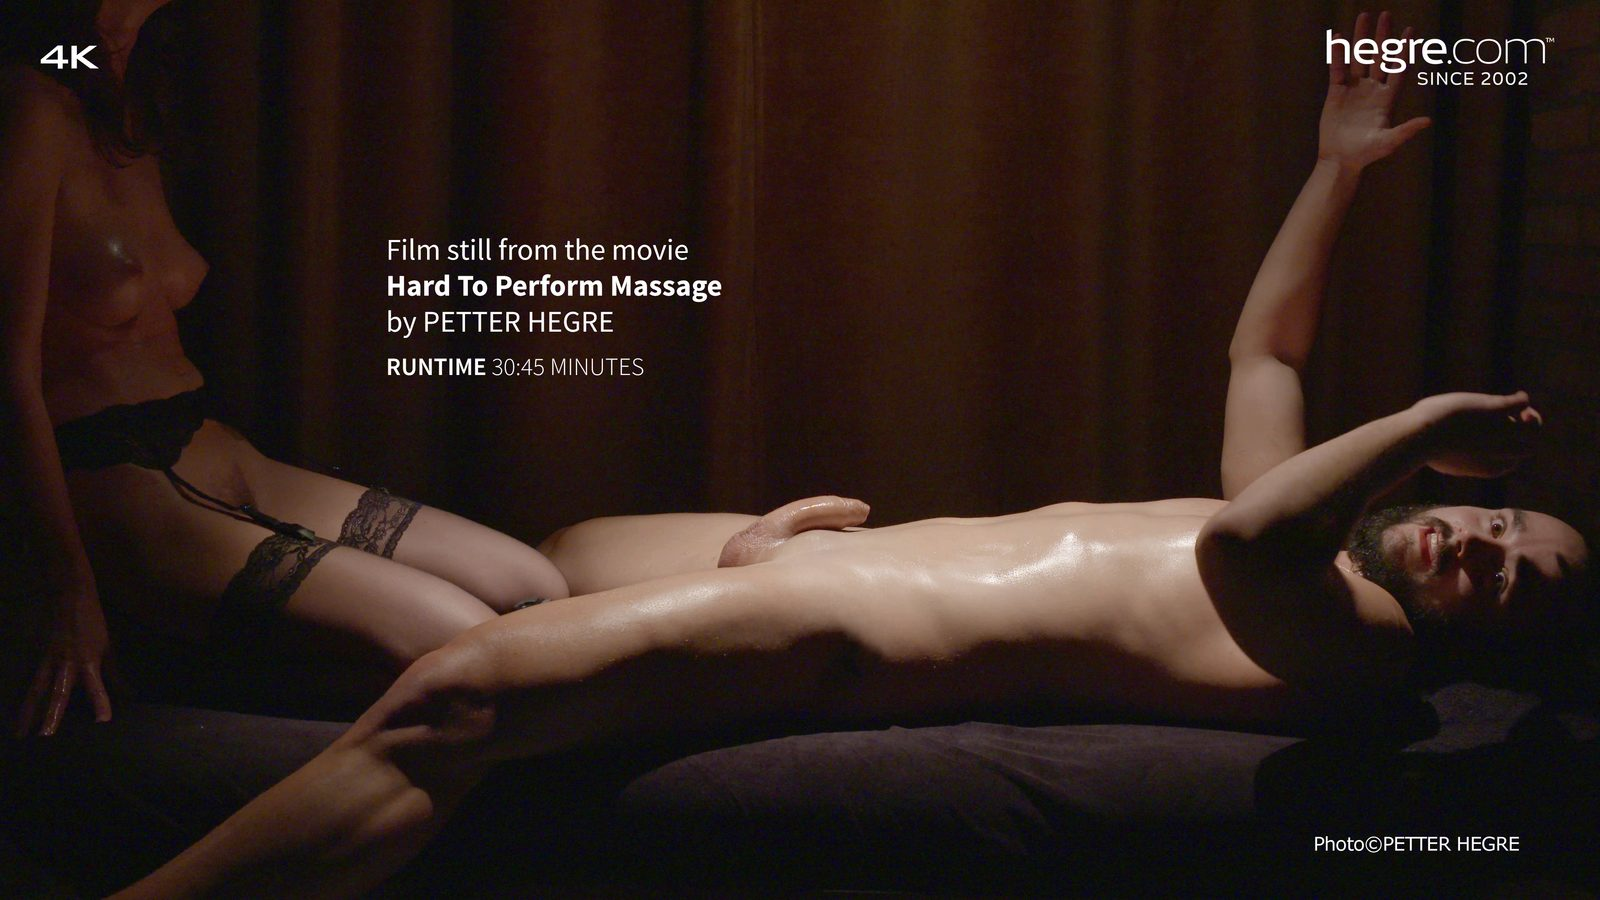 21f781 hegre-art 2017-02-16 Hard to Perform Massage